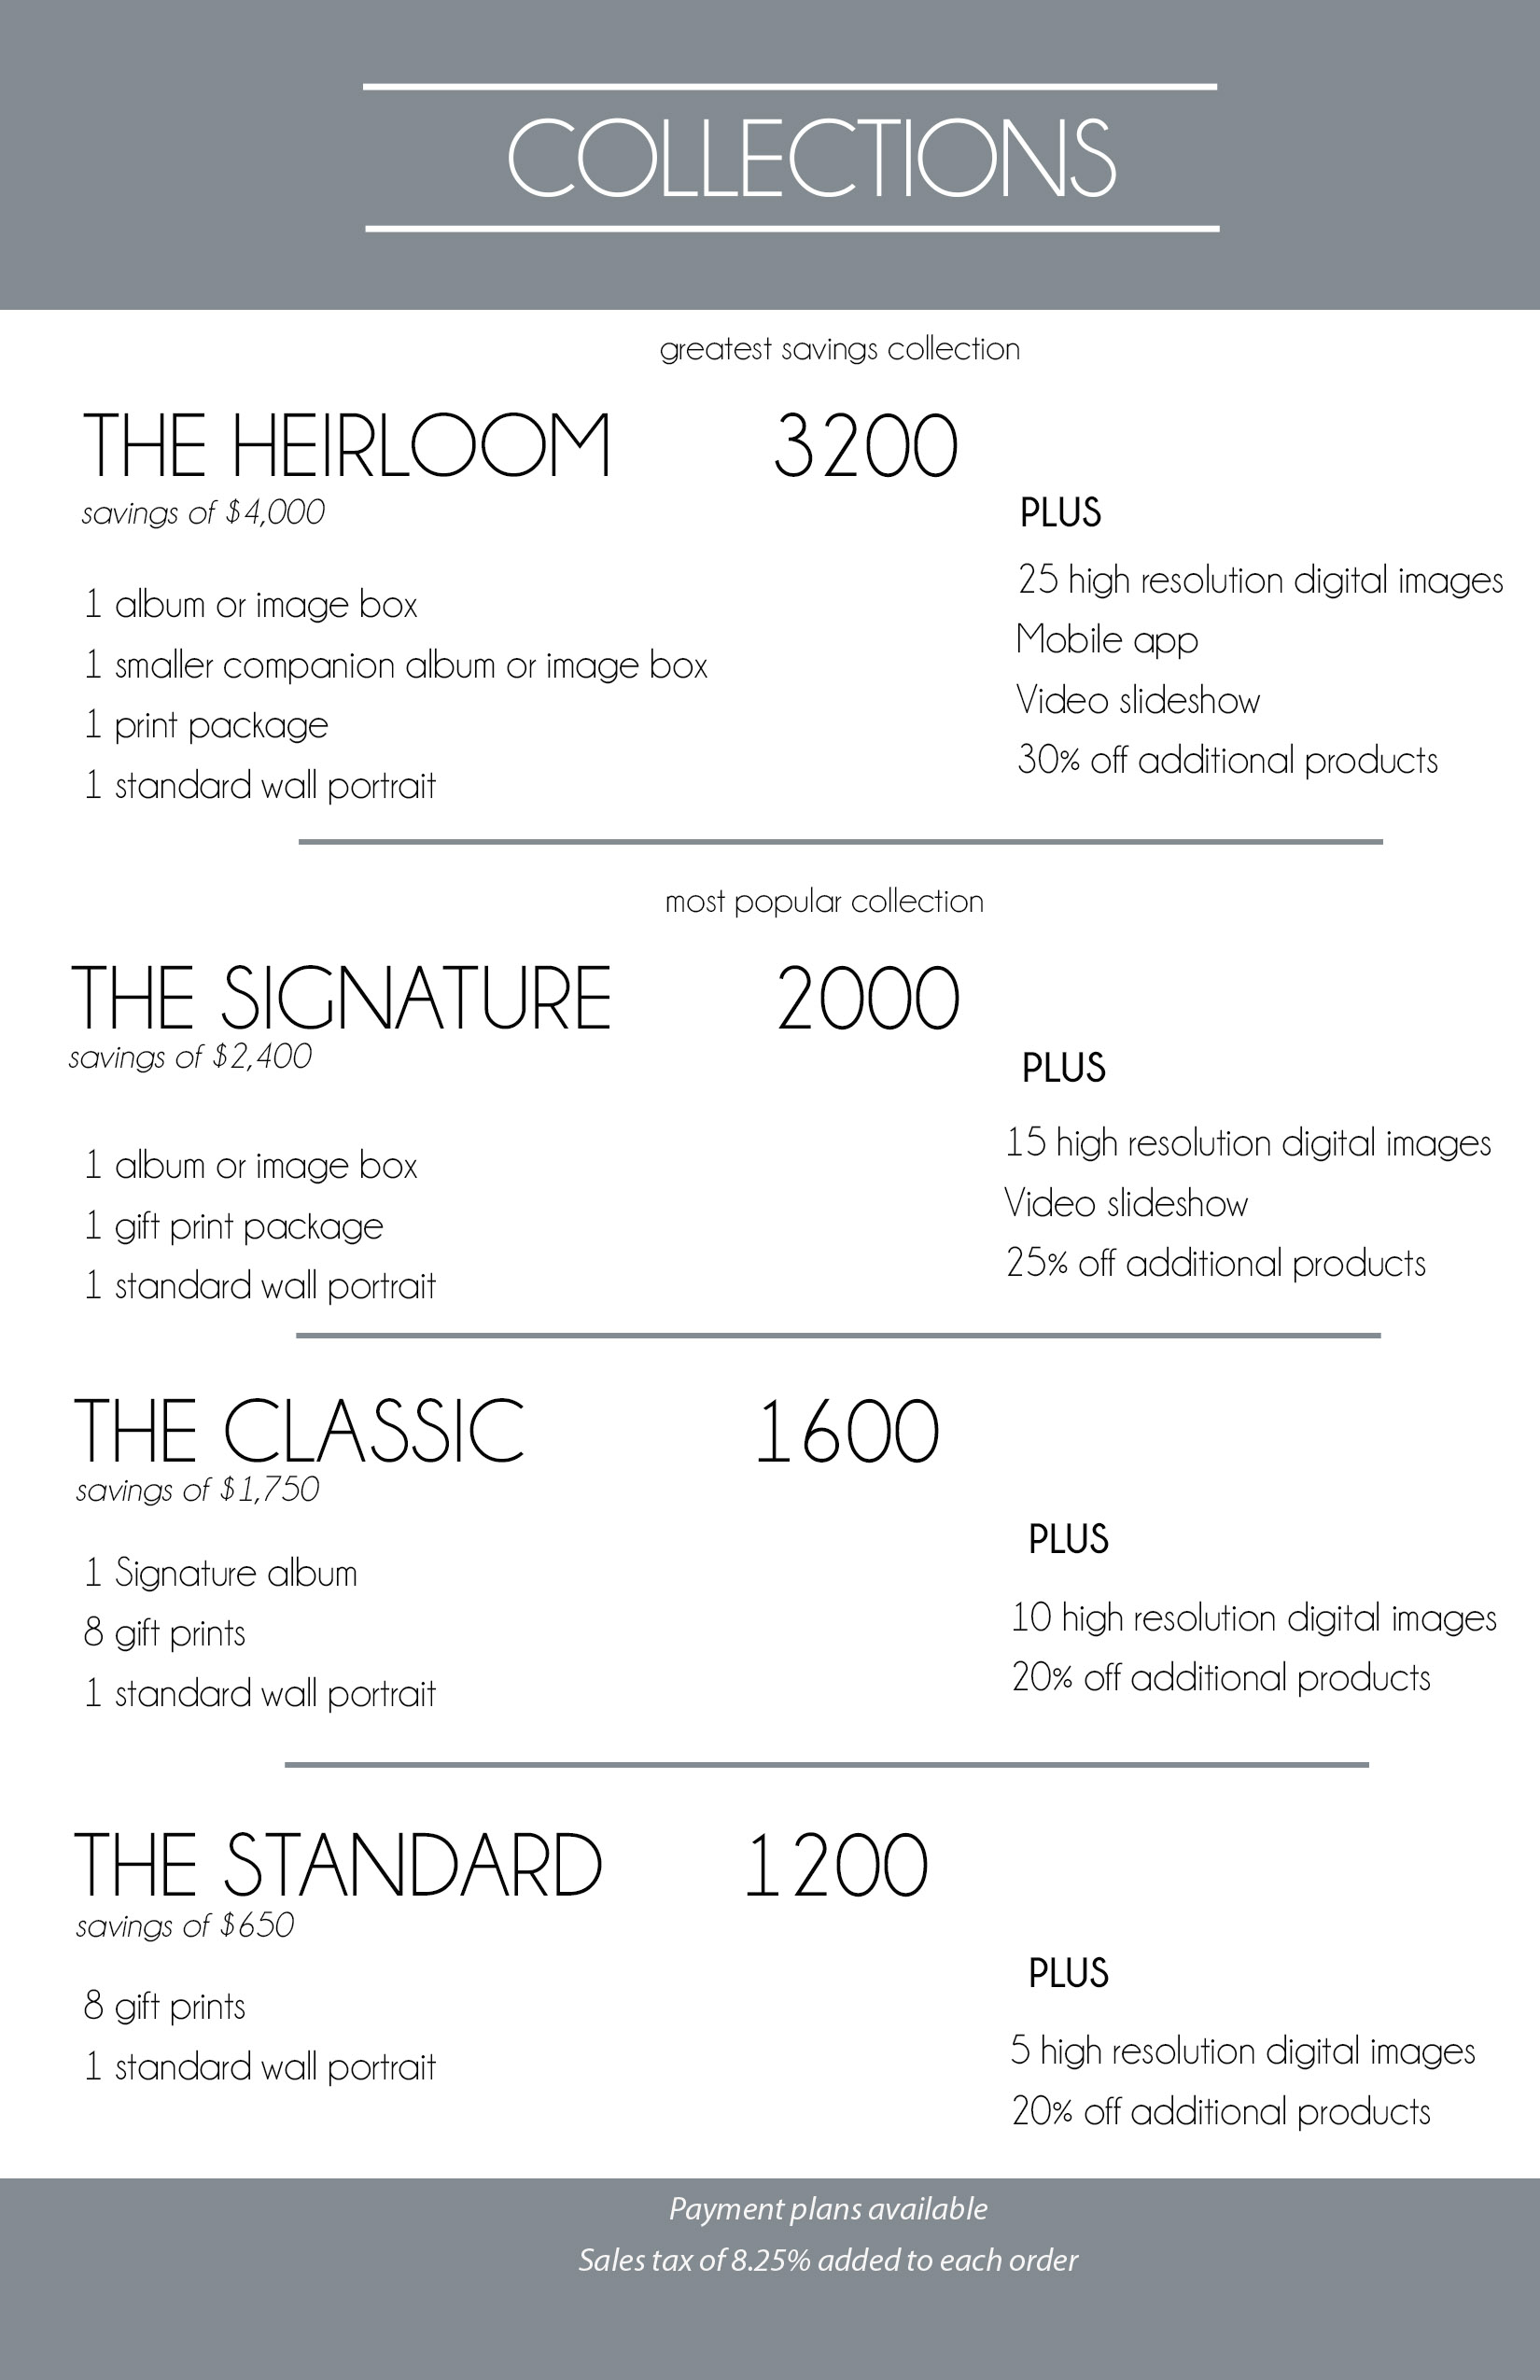 SESSION-GUIDE-1017b_collections.jpg